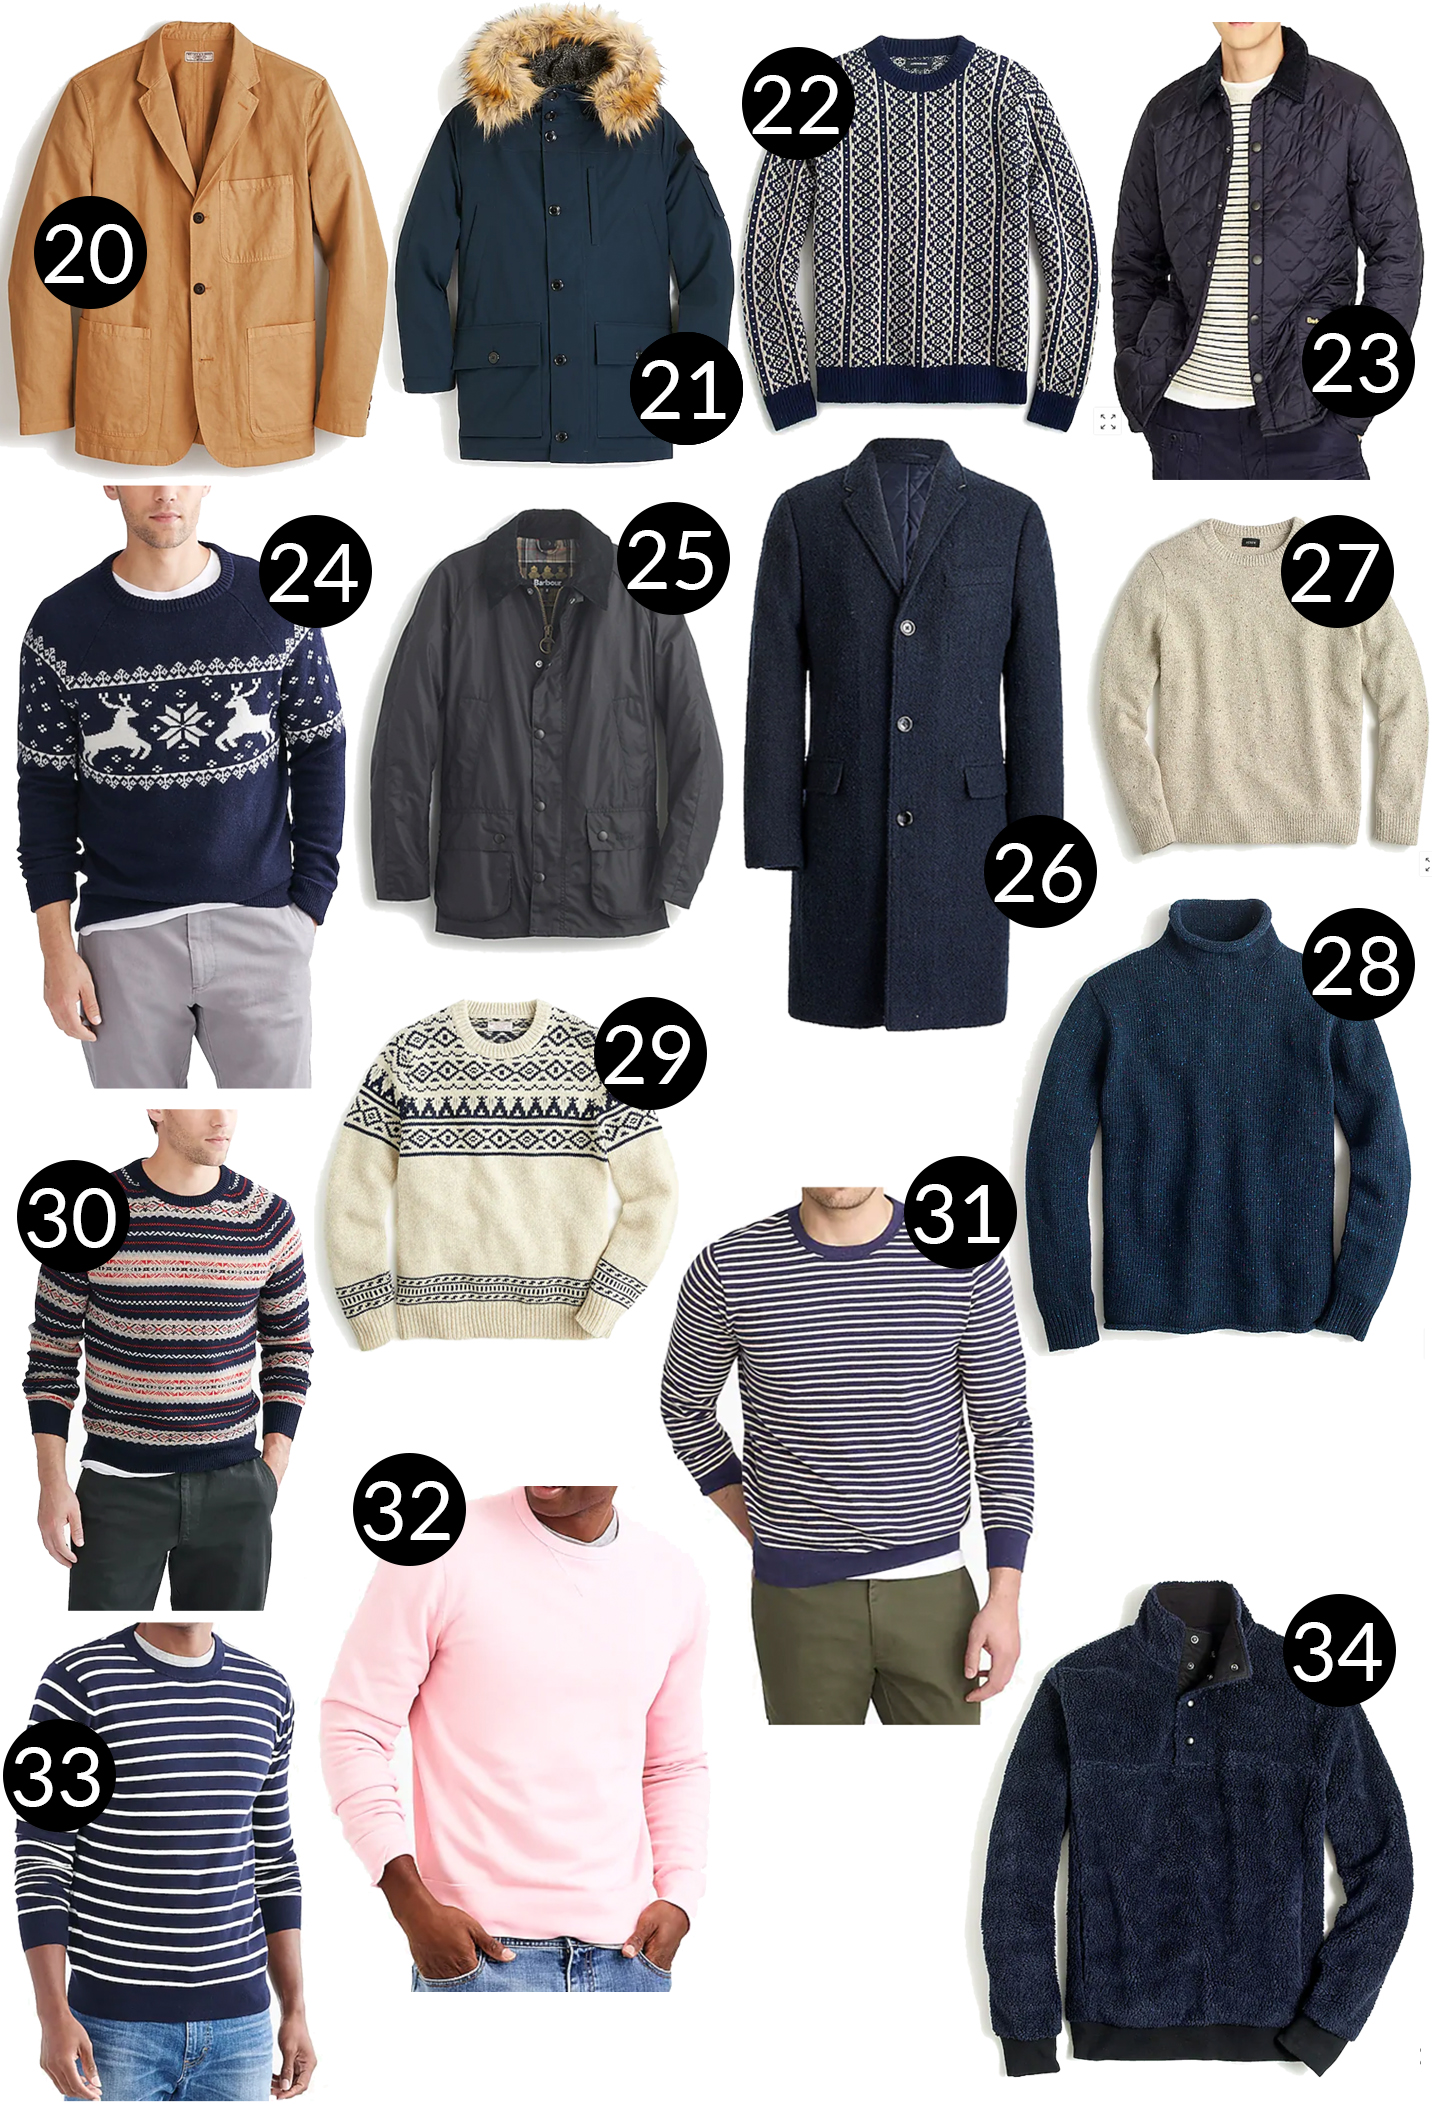 Mens Holiday Gift Guide - Outerwear